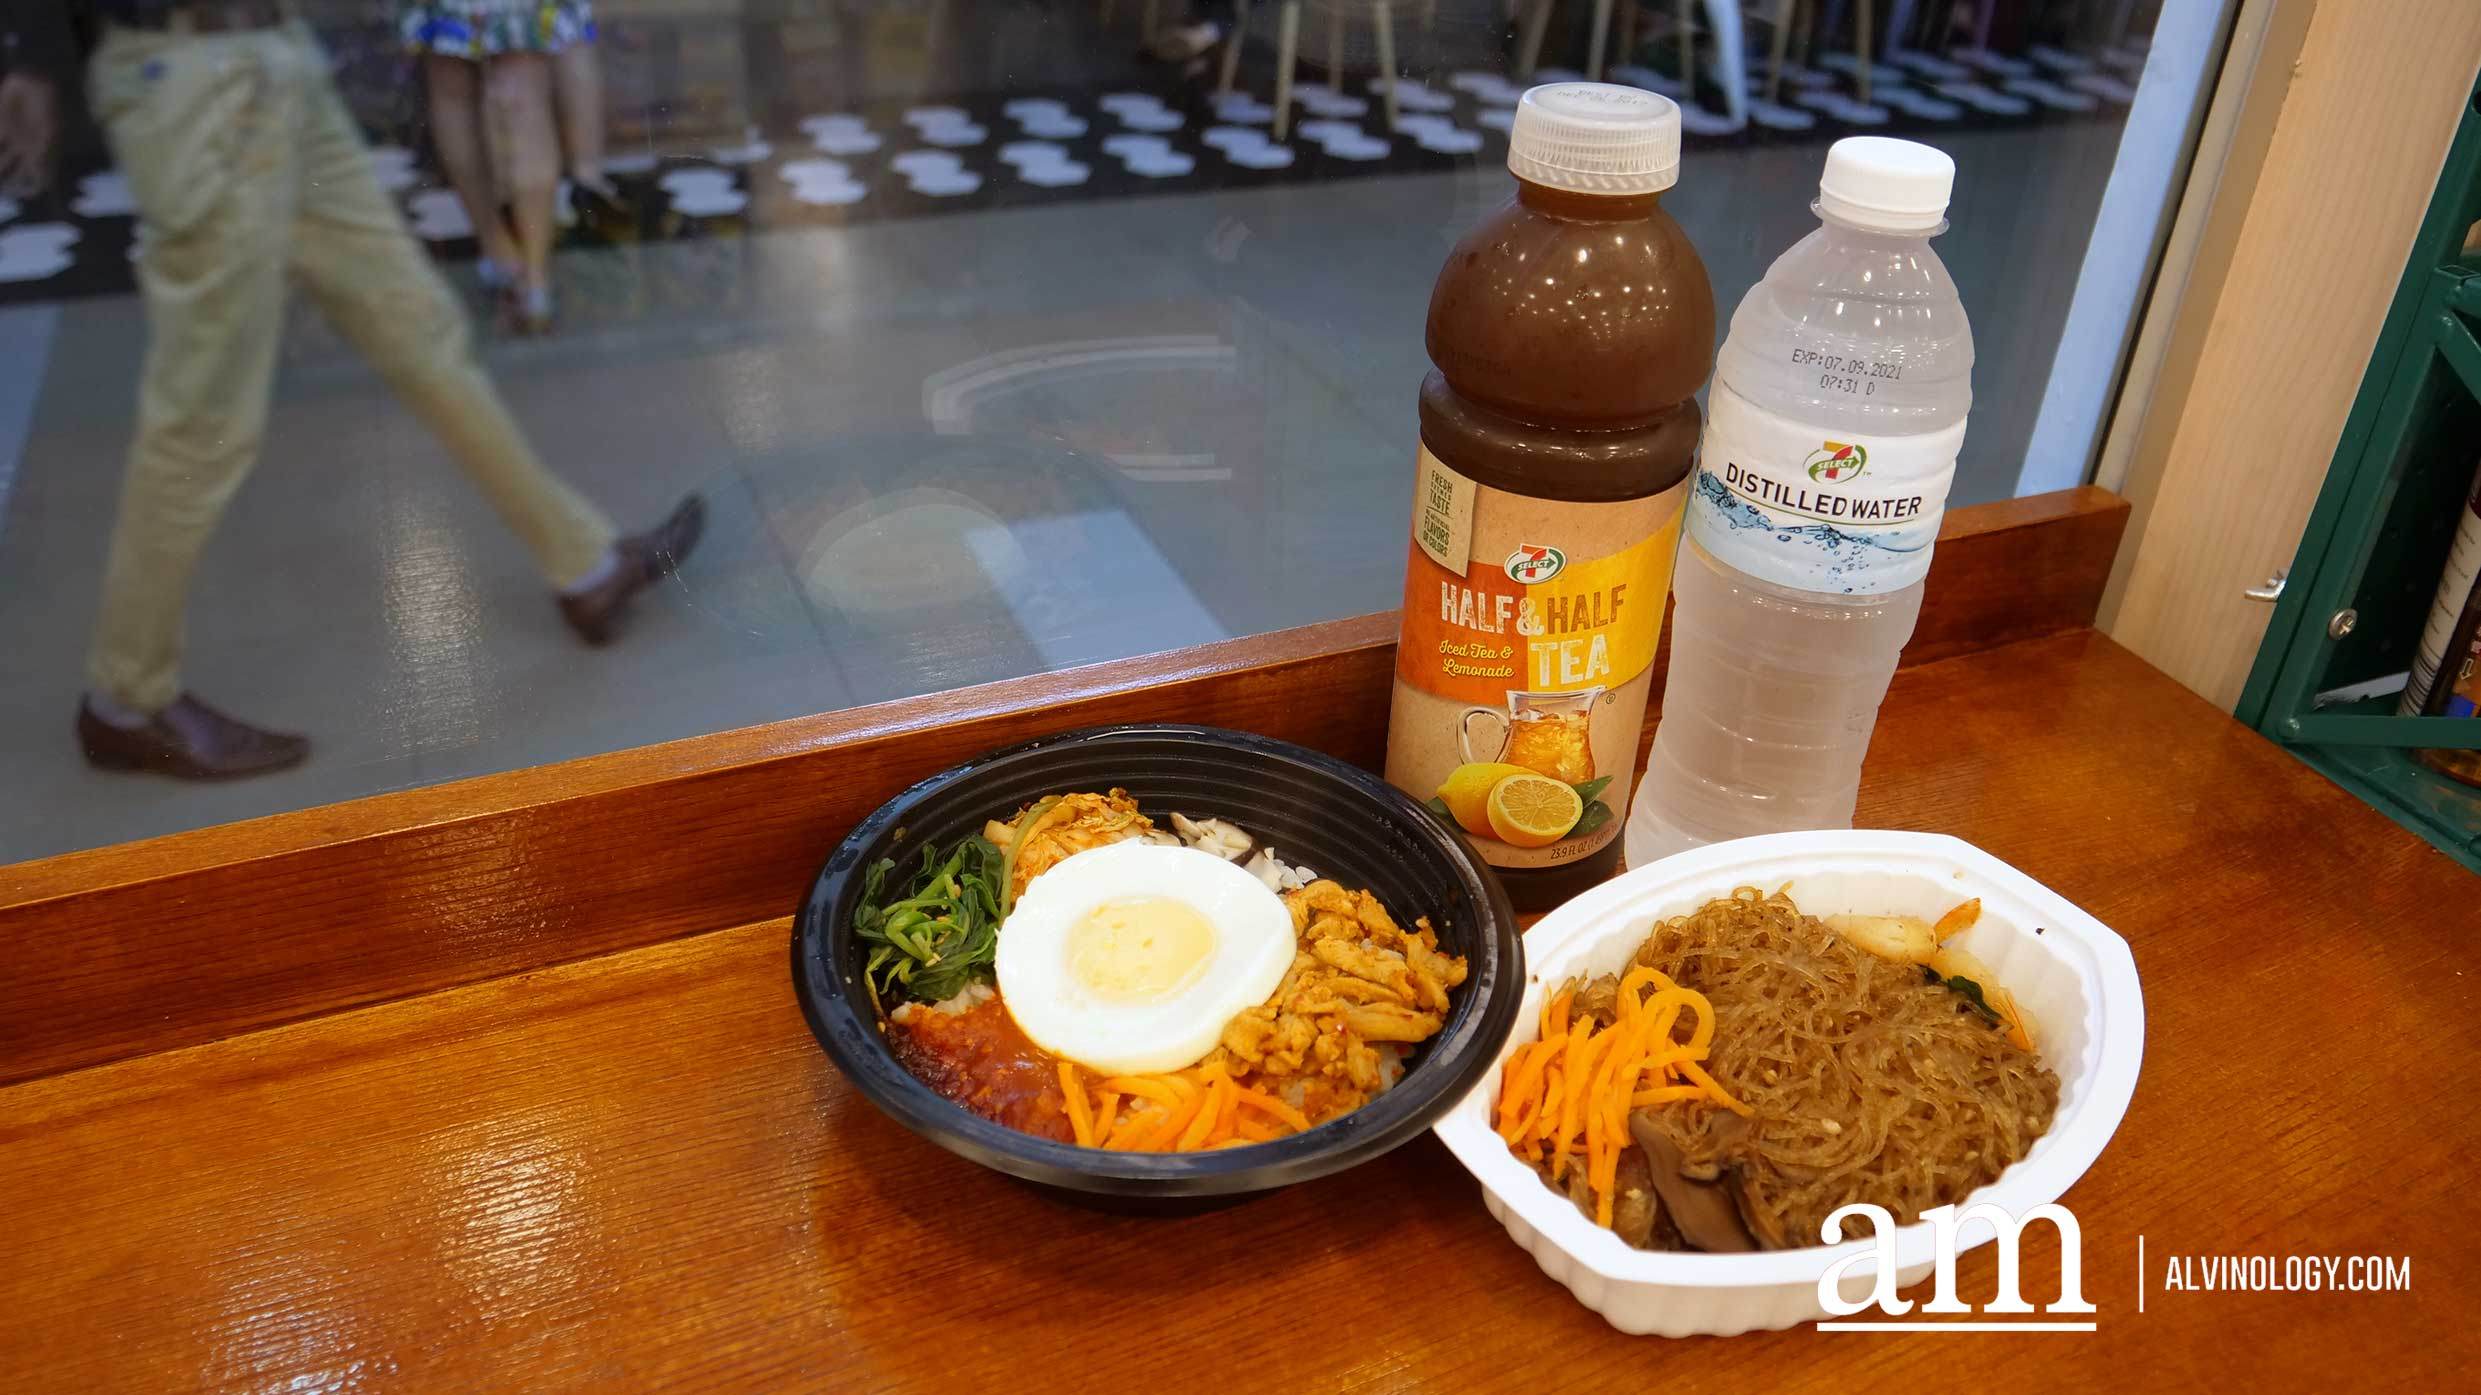 Luncheon Meat Onigiri to Korean Bibimpap: Five Surprisingly Exotic Ready-to-eat Meals at 7-Eleven Singapore - Alvinology